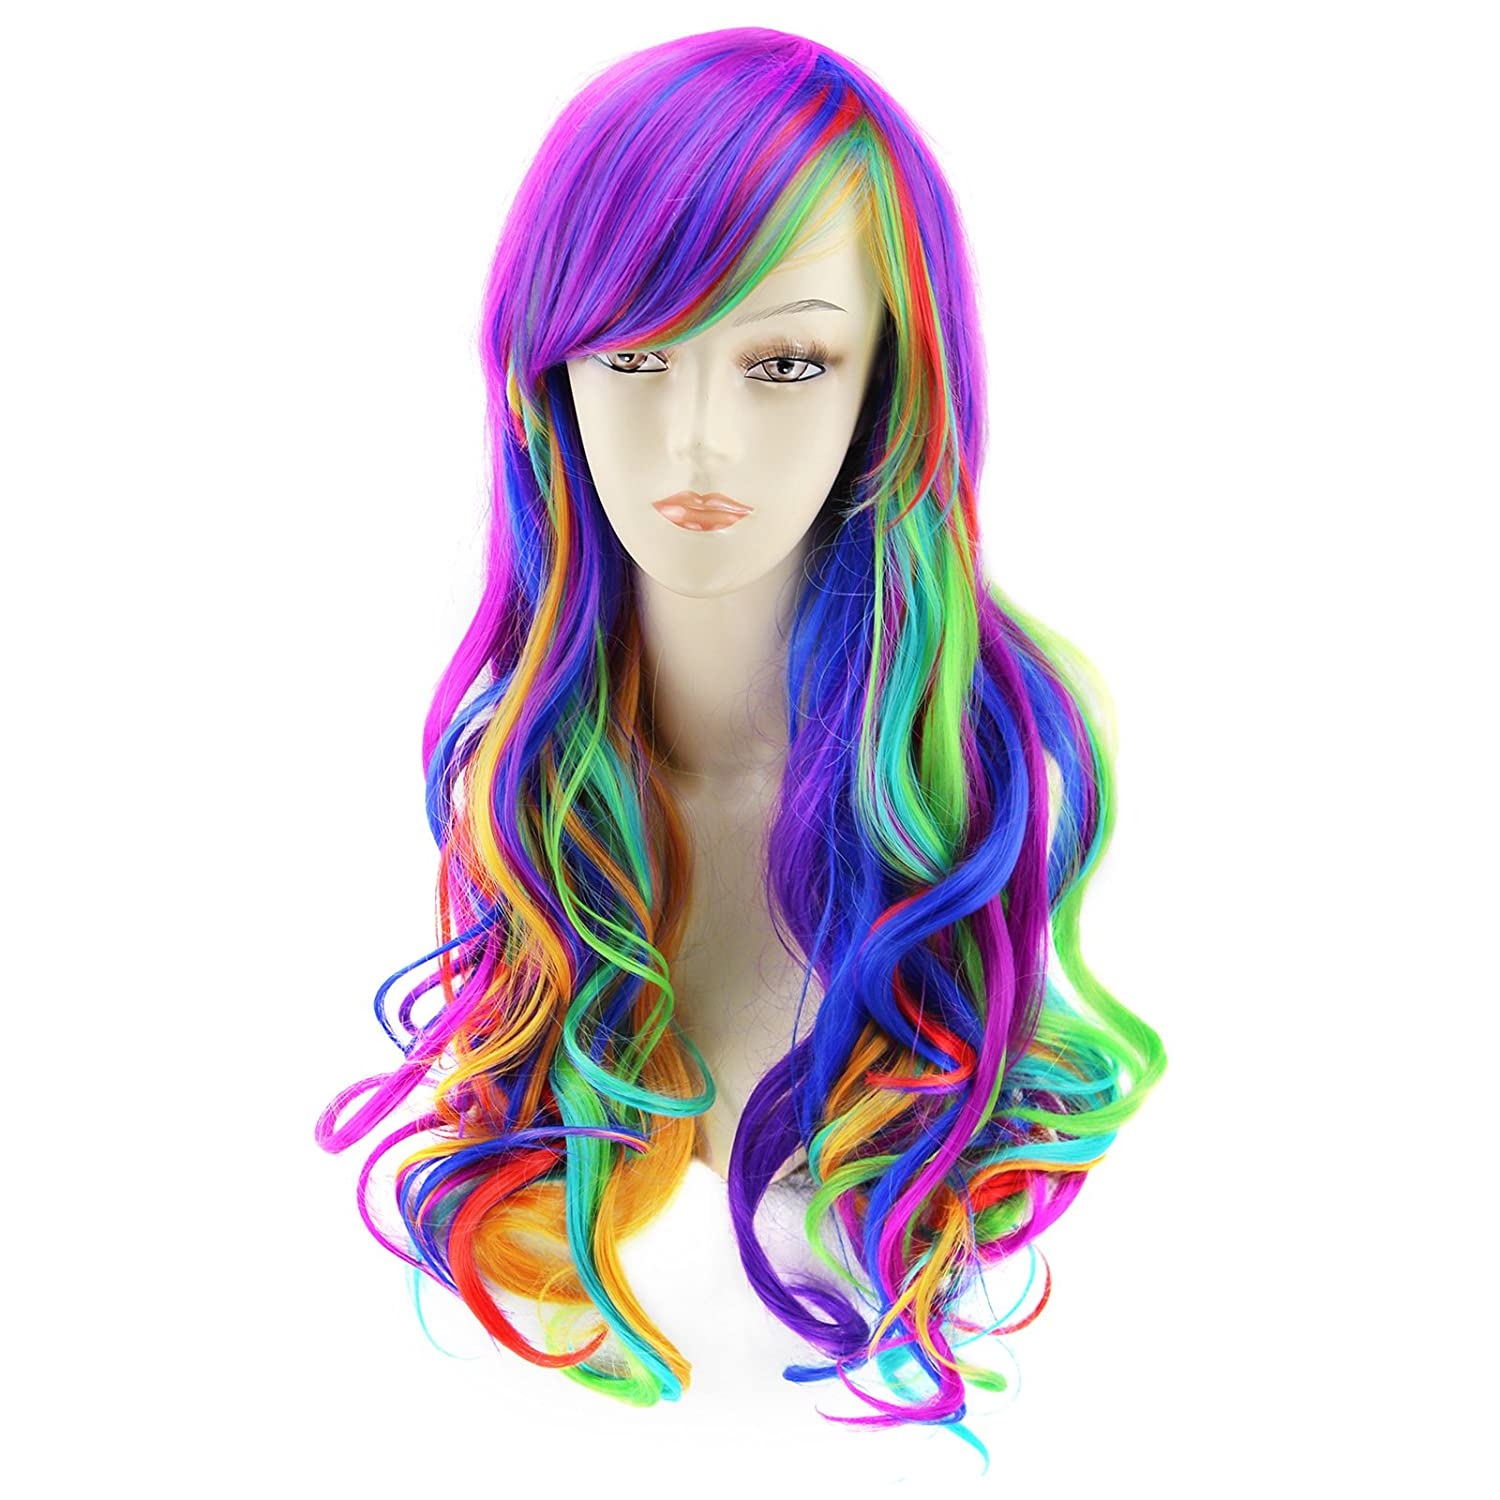 AGPtEK 27.5 Inches Full Long Curly Wavy Rainbow Hair Wig for Costume Cosplay Party Halloween - Harajuku Lolita Style Heat Resistant